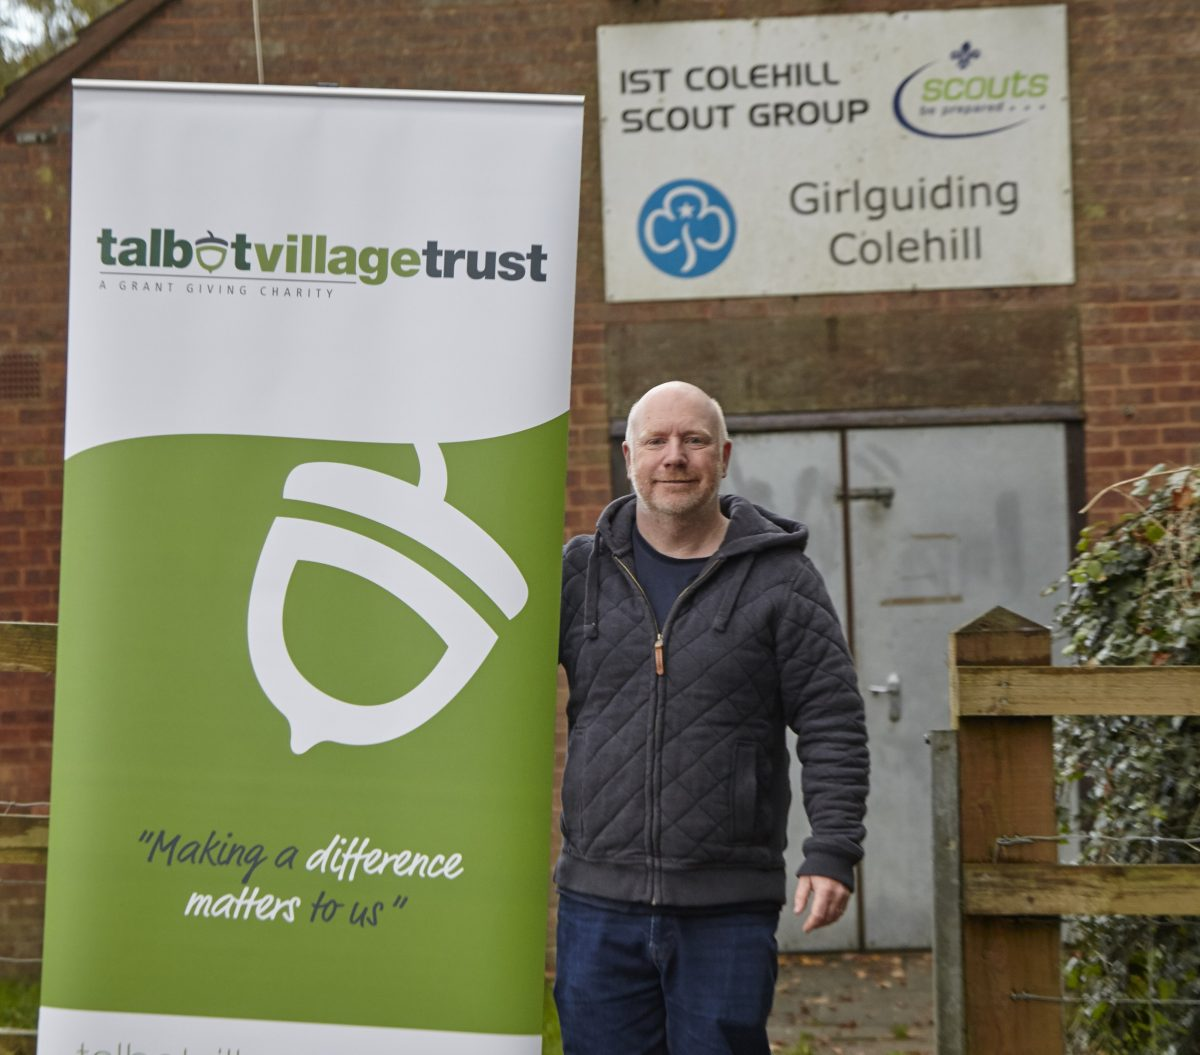 Ashington Group Meeting Hut: Talbot Village Trust Helps With Scout Hut Upgrade